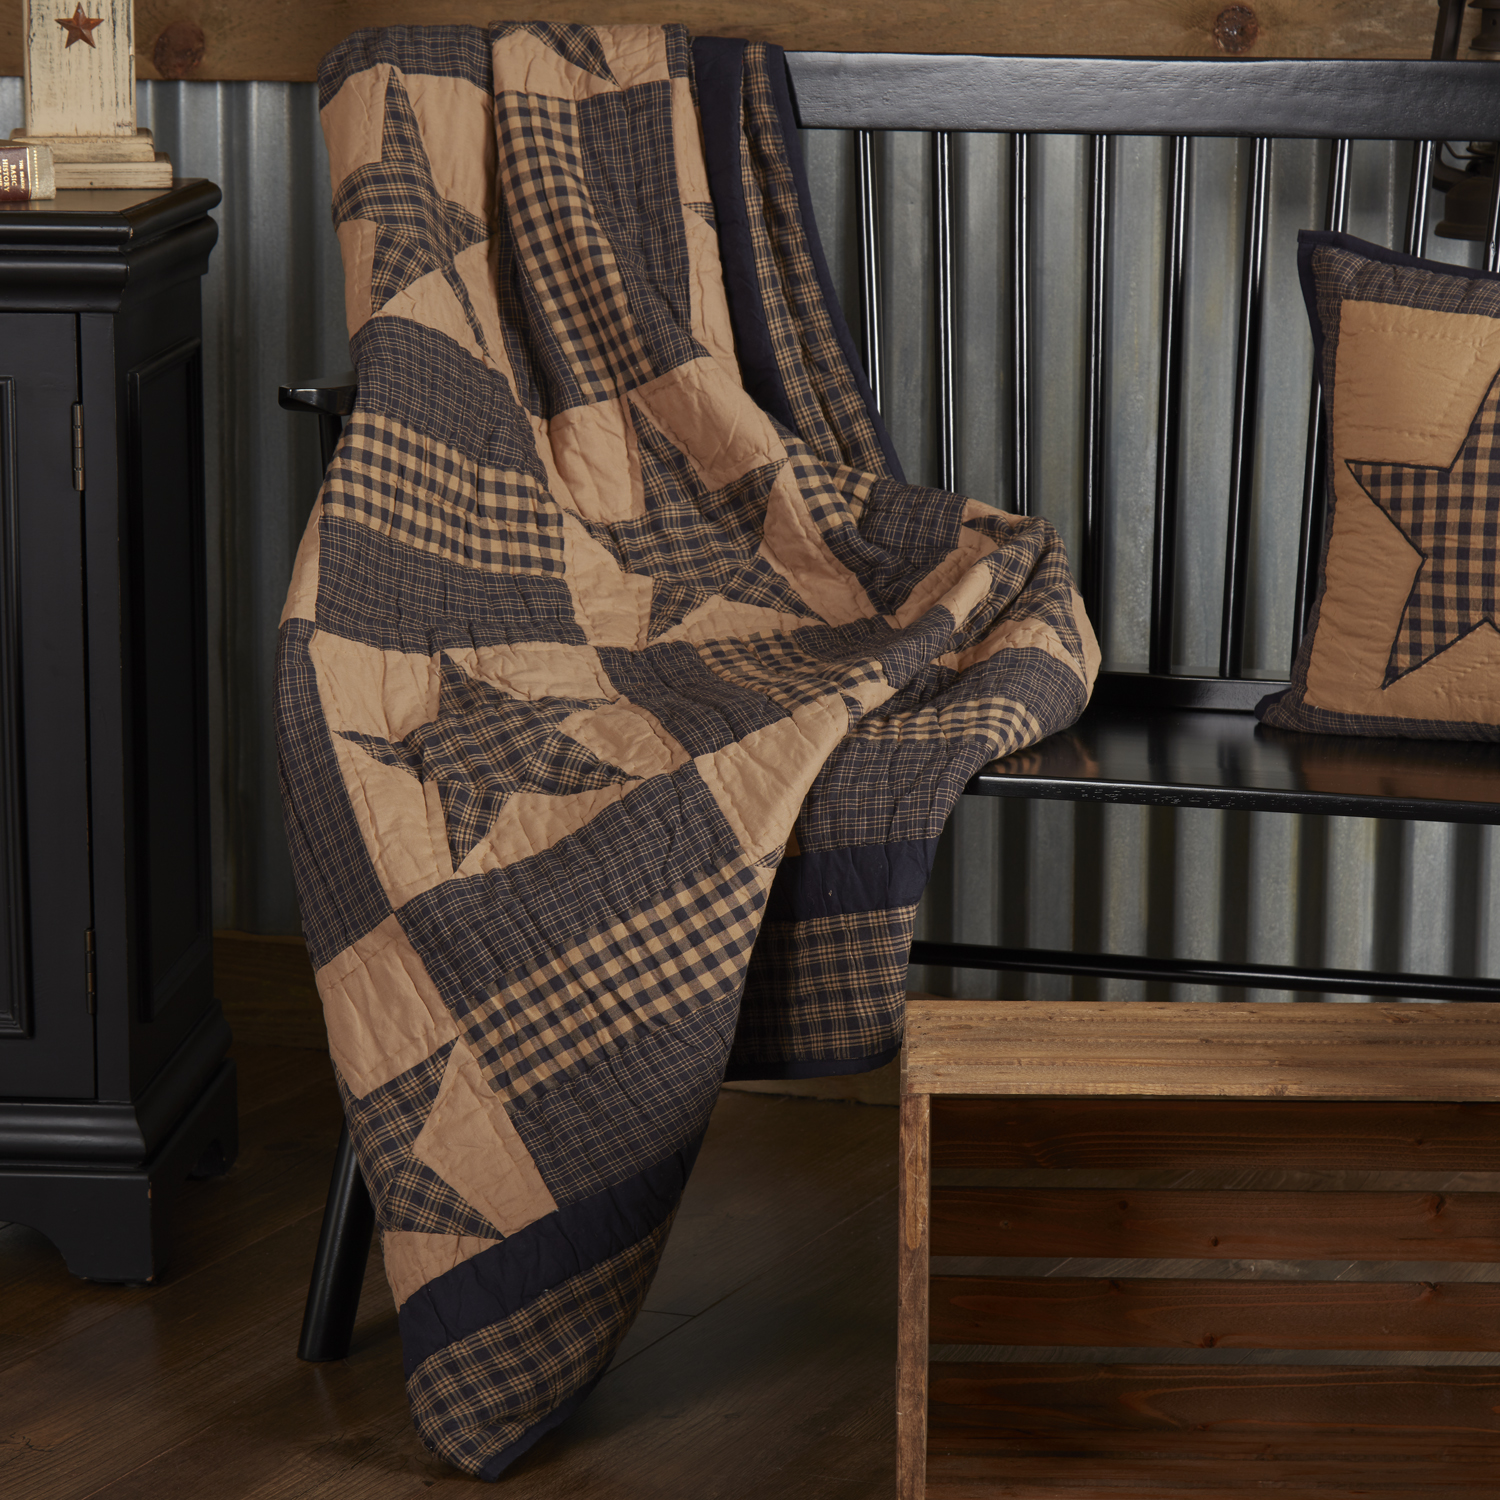 Teton-Star-Quilted-Throw-60x50-image-1